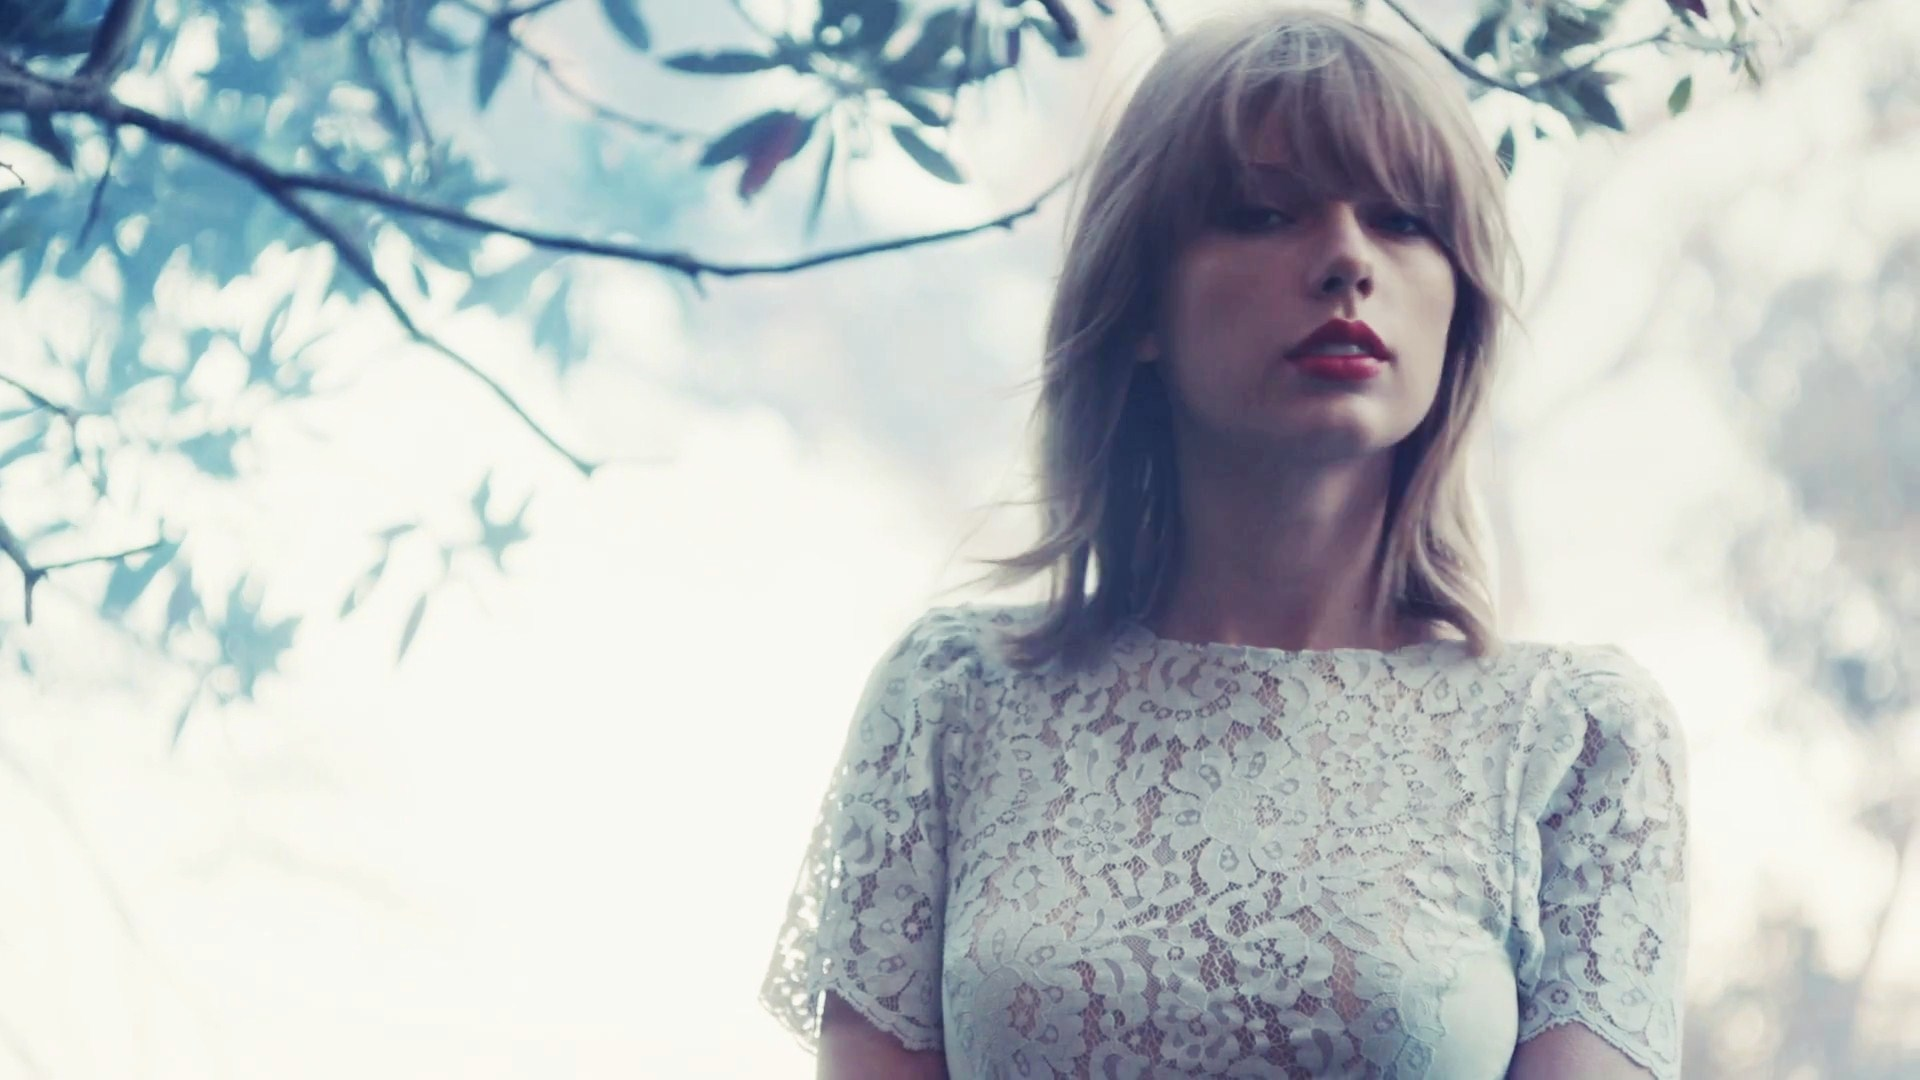 Taylor Swift Picture wallpapers (81 Wallpapers) – HD Wallpapers